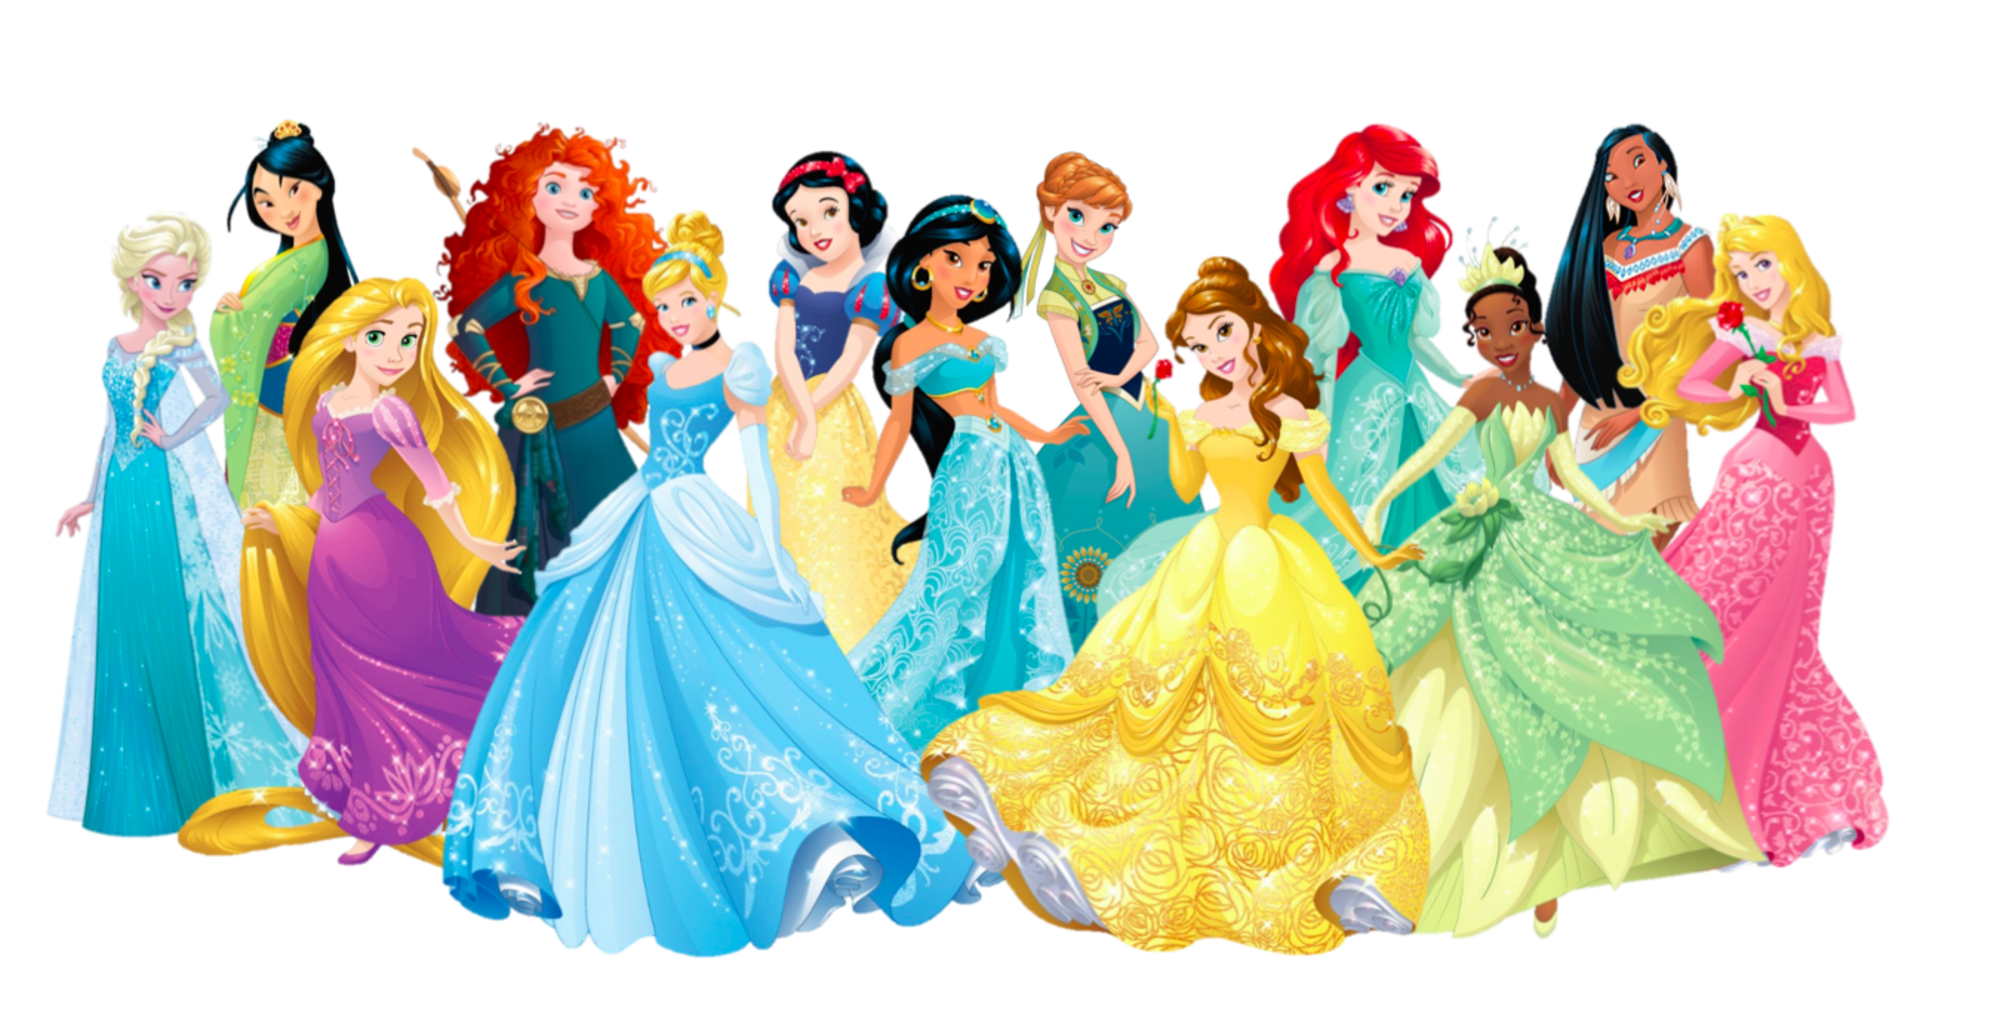 Dessin Disney: Disney Princesses From Oldest To Youngest